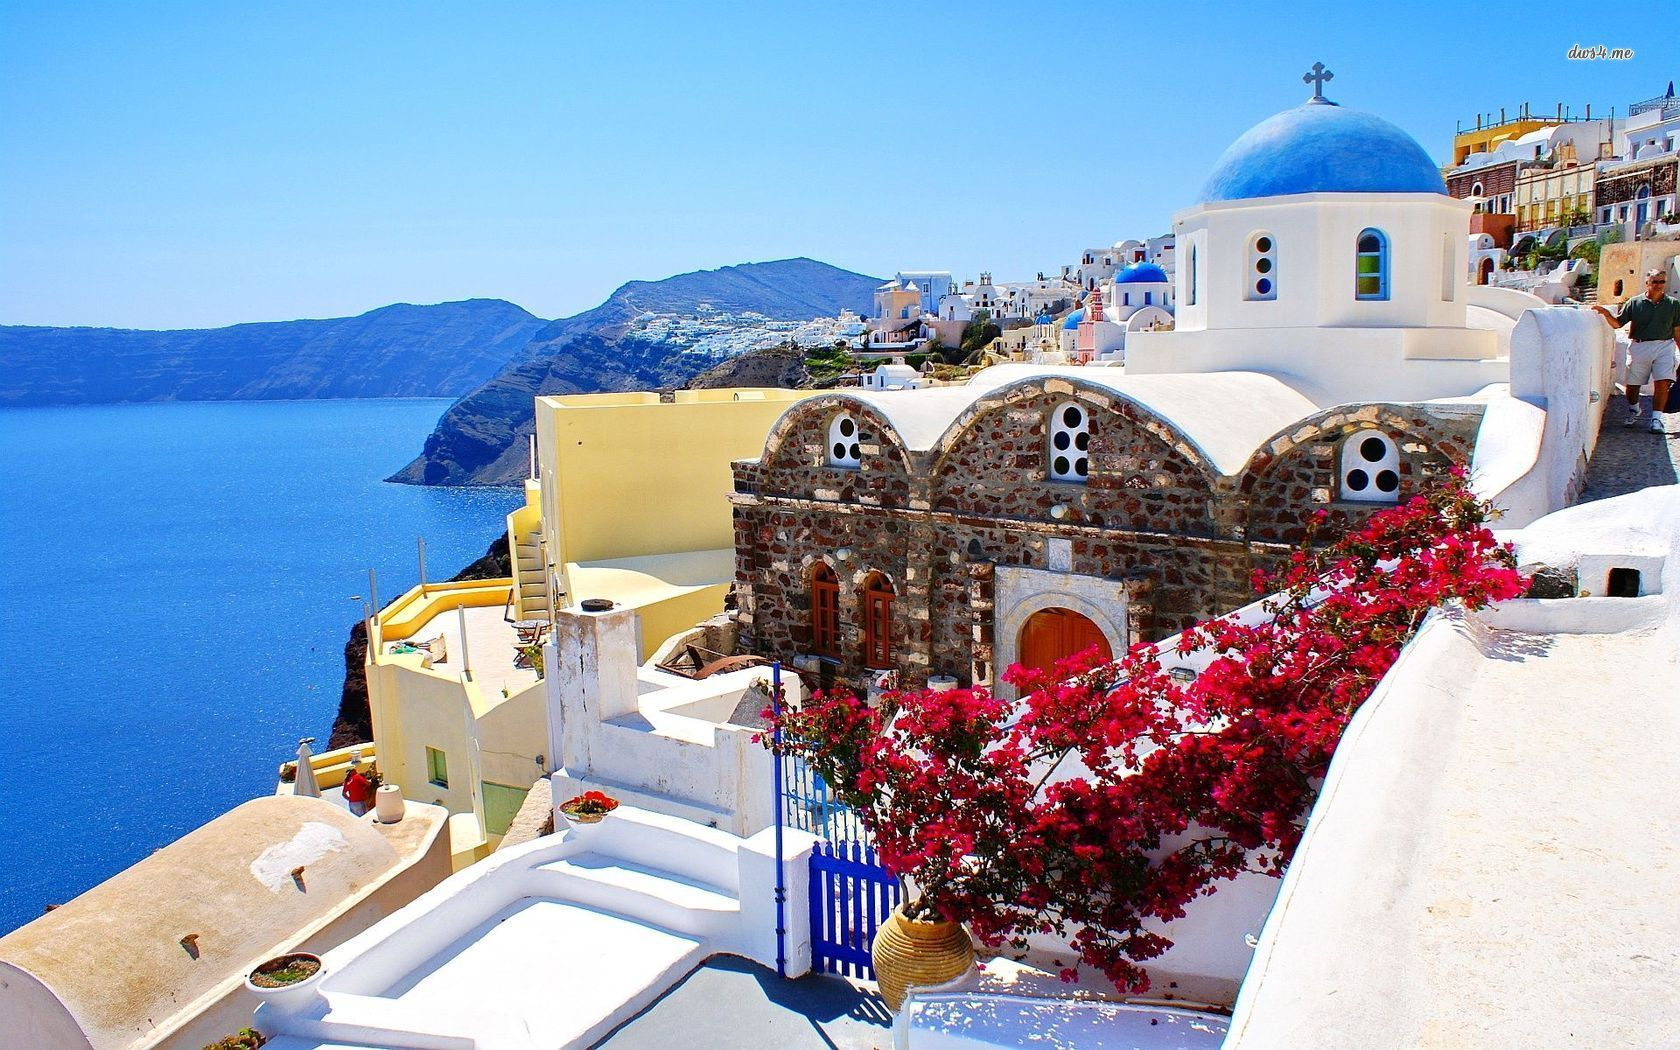 Santorini Greece Santorini Greece wallpaper Santorini greece 1680x1050